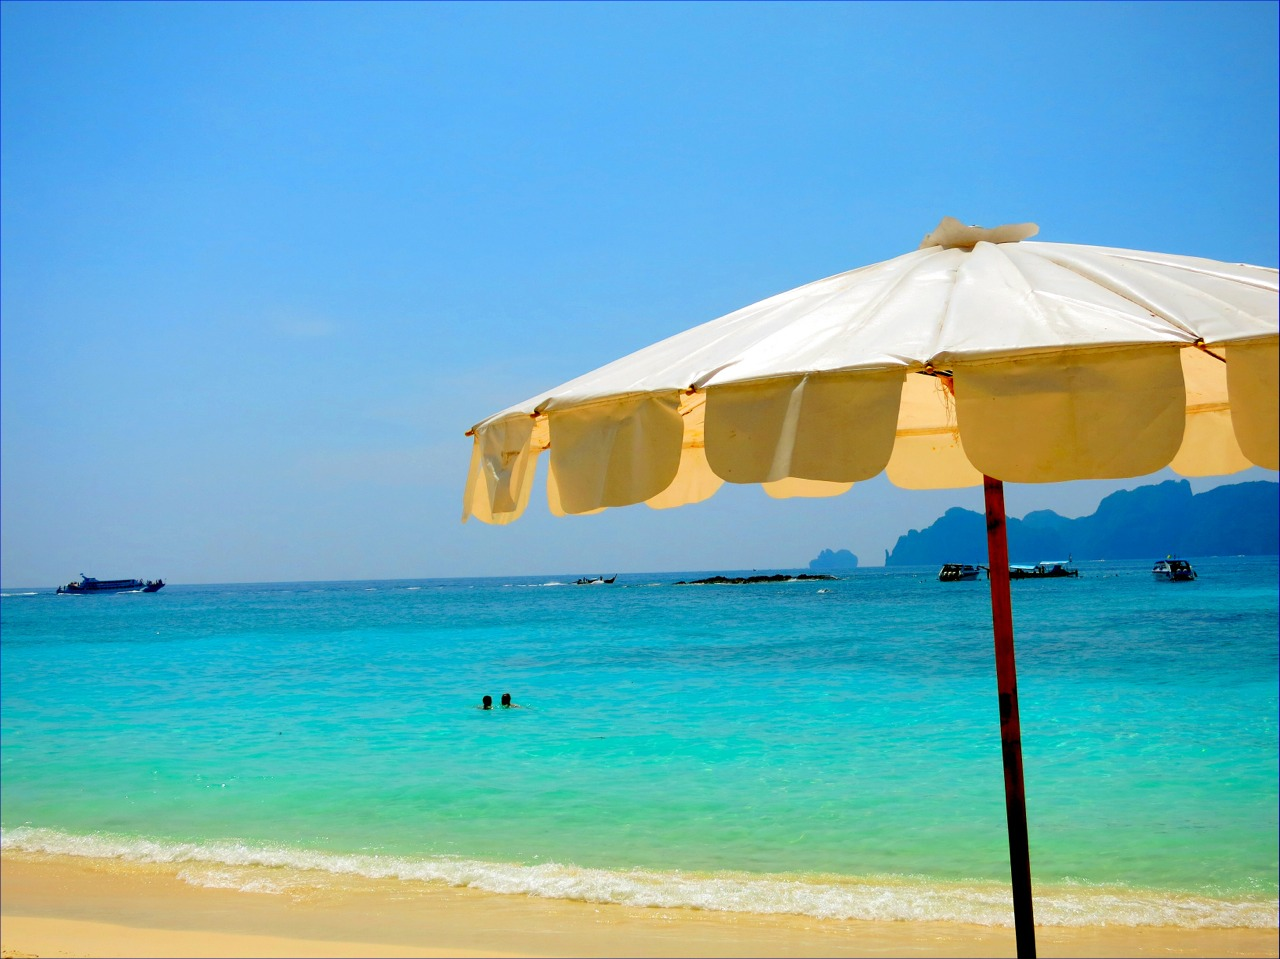 Long beach, Koh Phi Phi Don. Come here to snorkel with sharks.